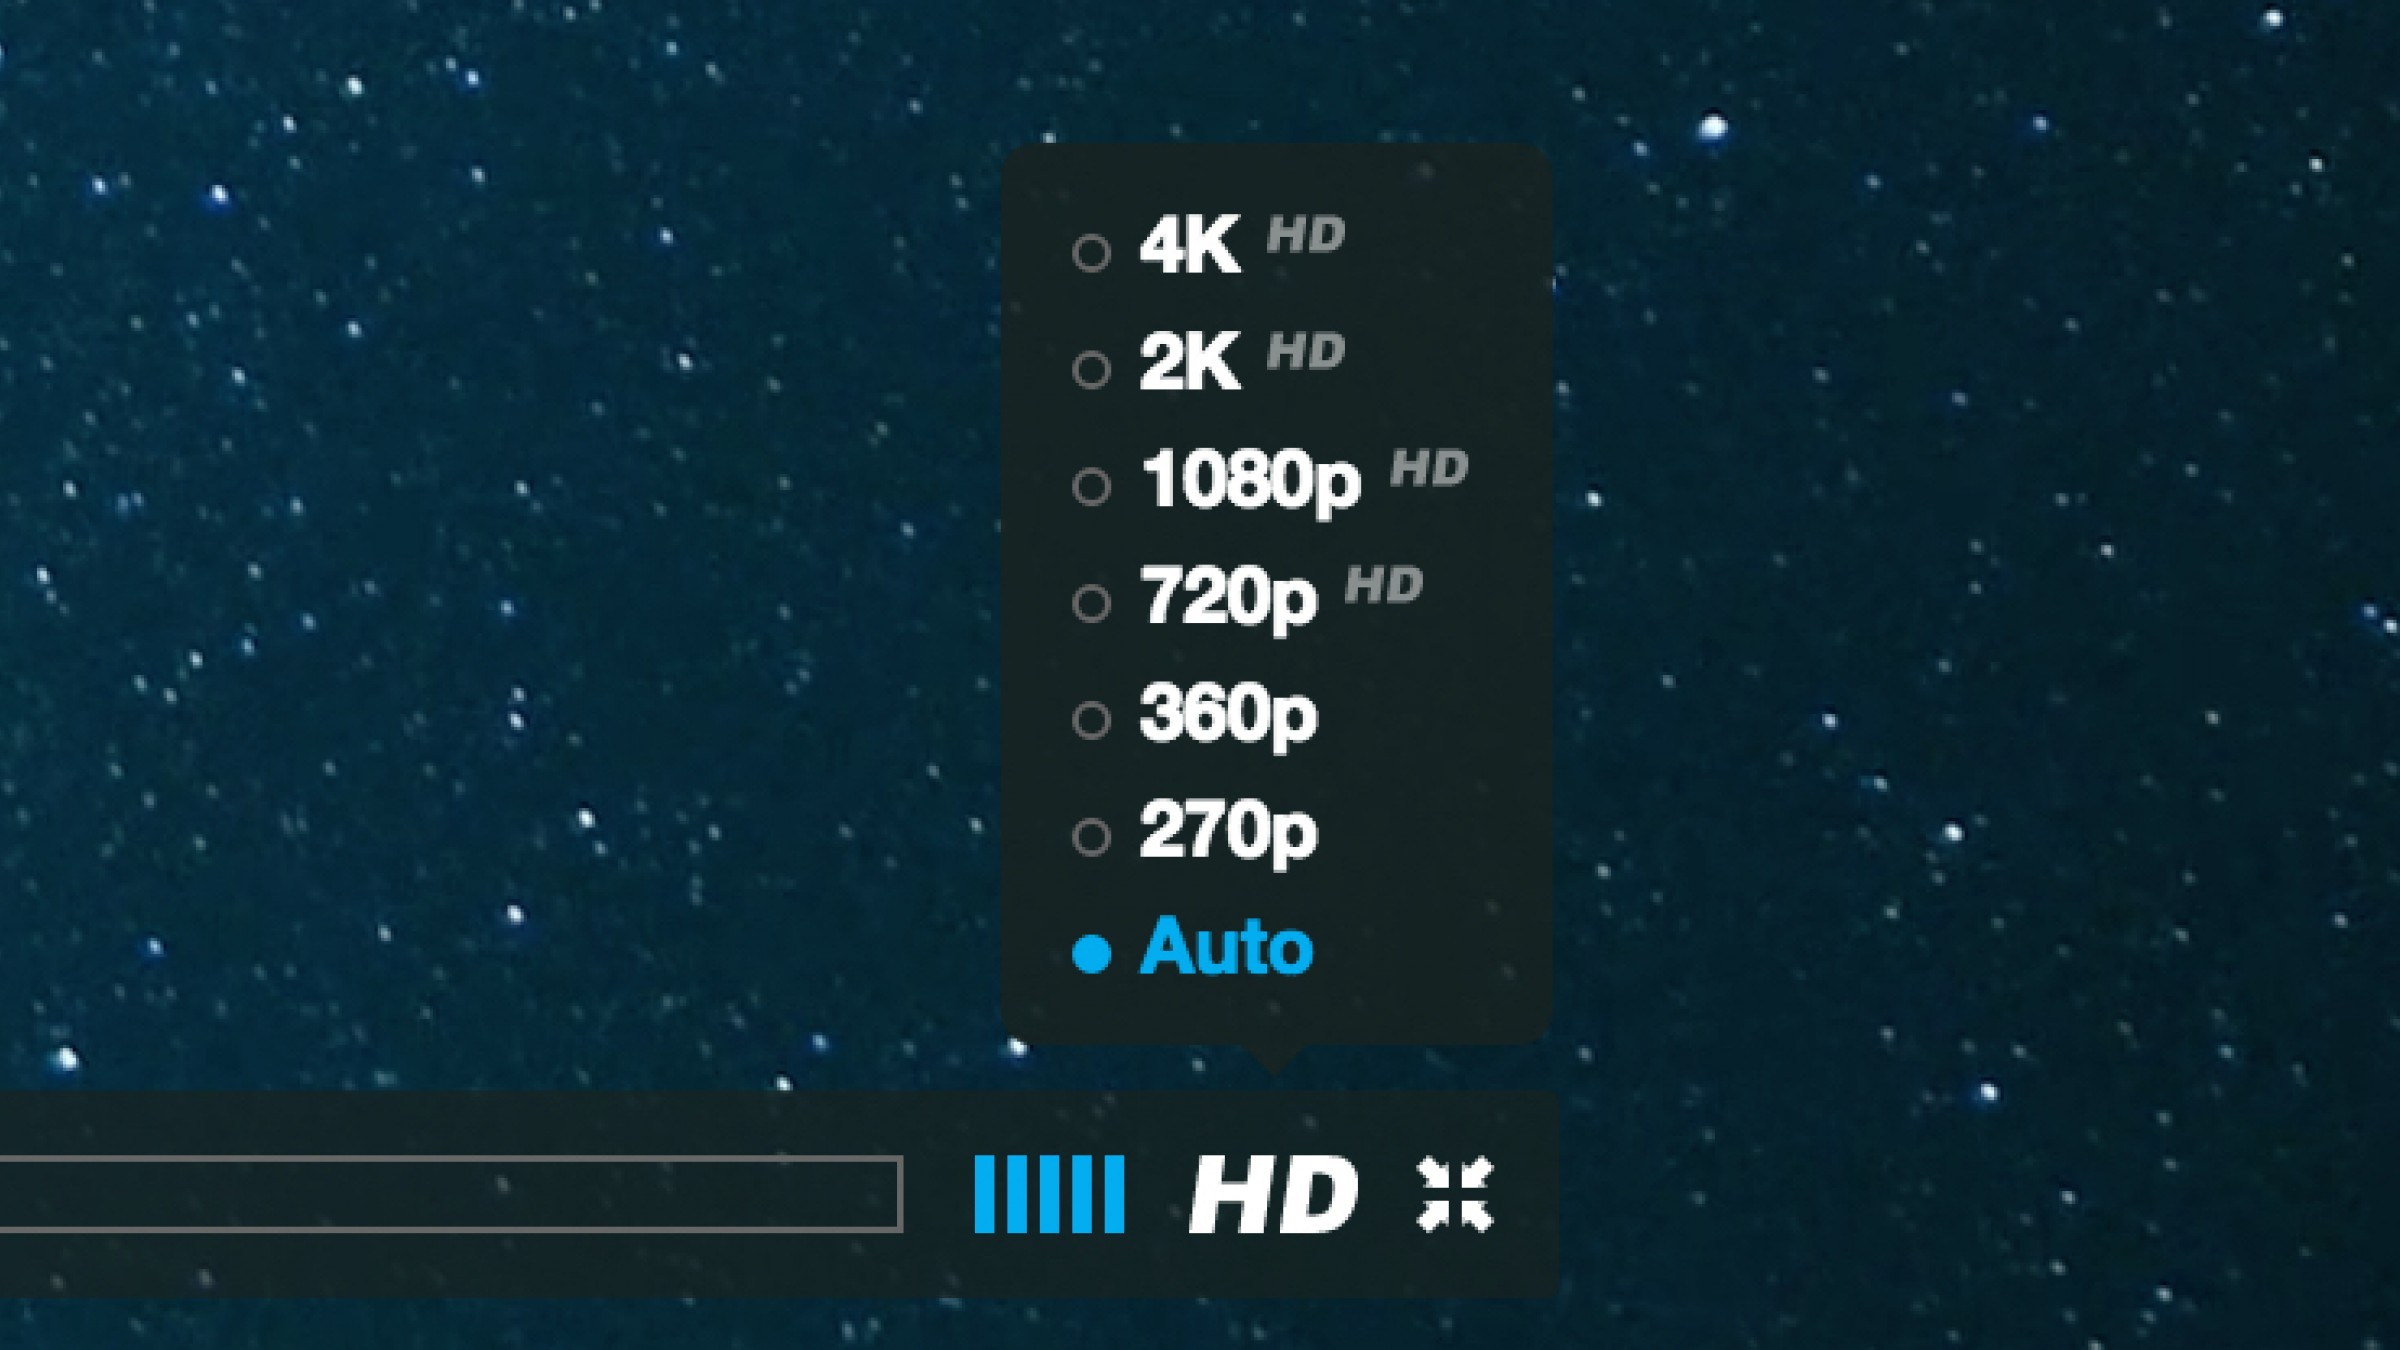 More on Vimeo's 4K Playback, Adaptive Streaming, and Higher Frame Rates